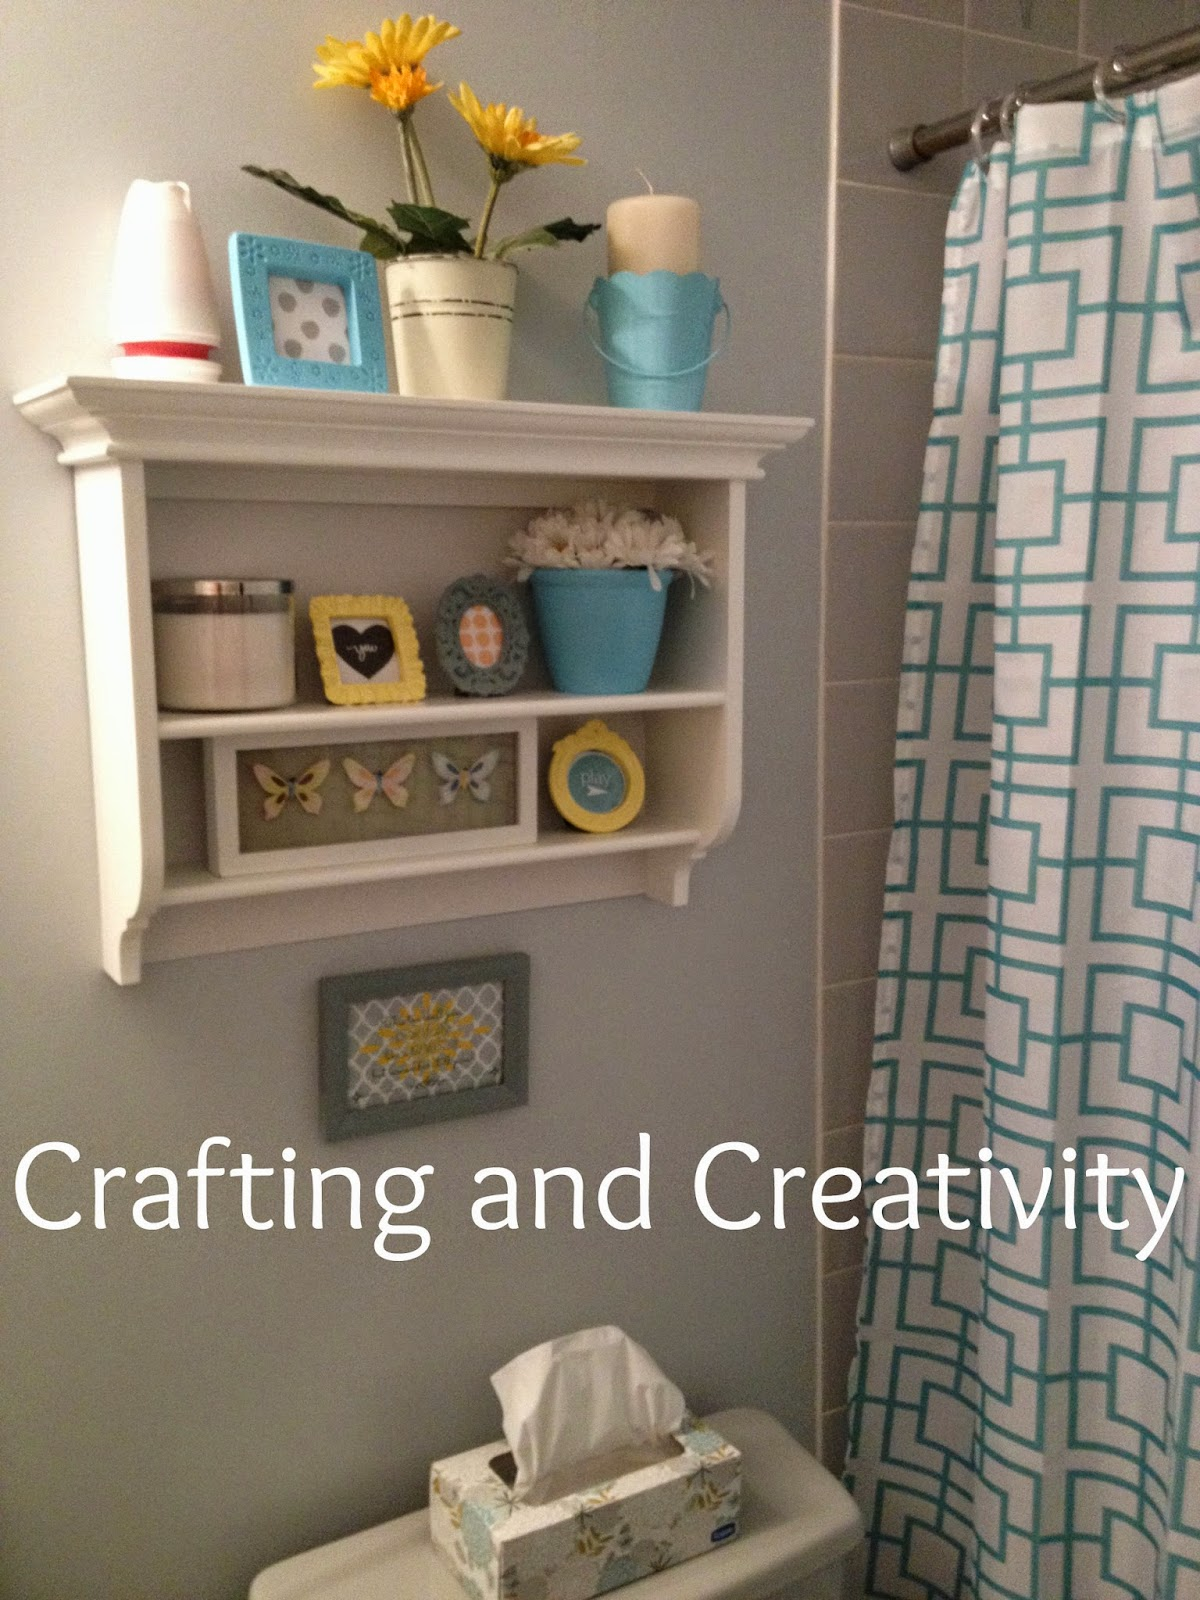 Crafting and creativity blue grey yellow bathroom decor for Bathroom ideas yellow and gray